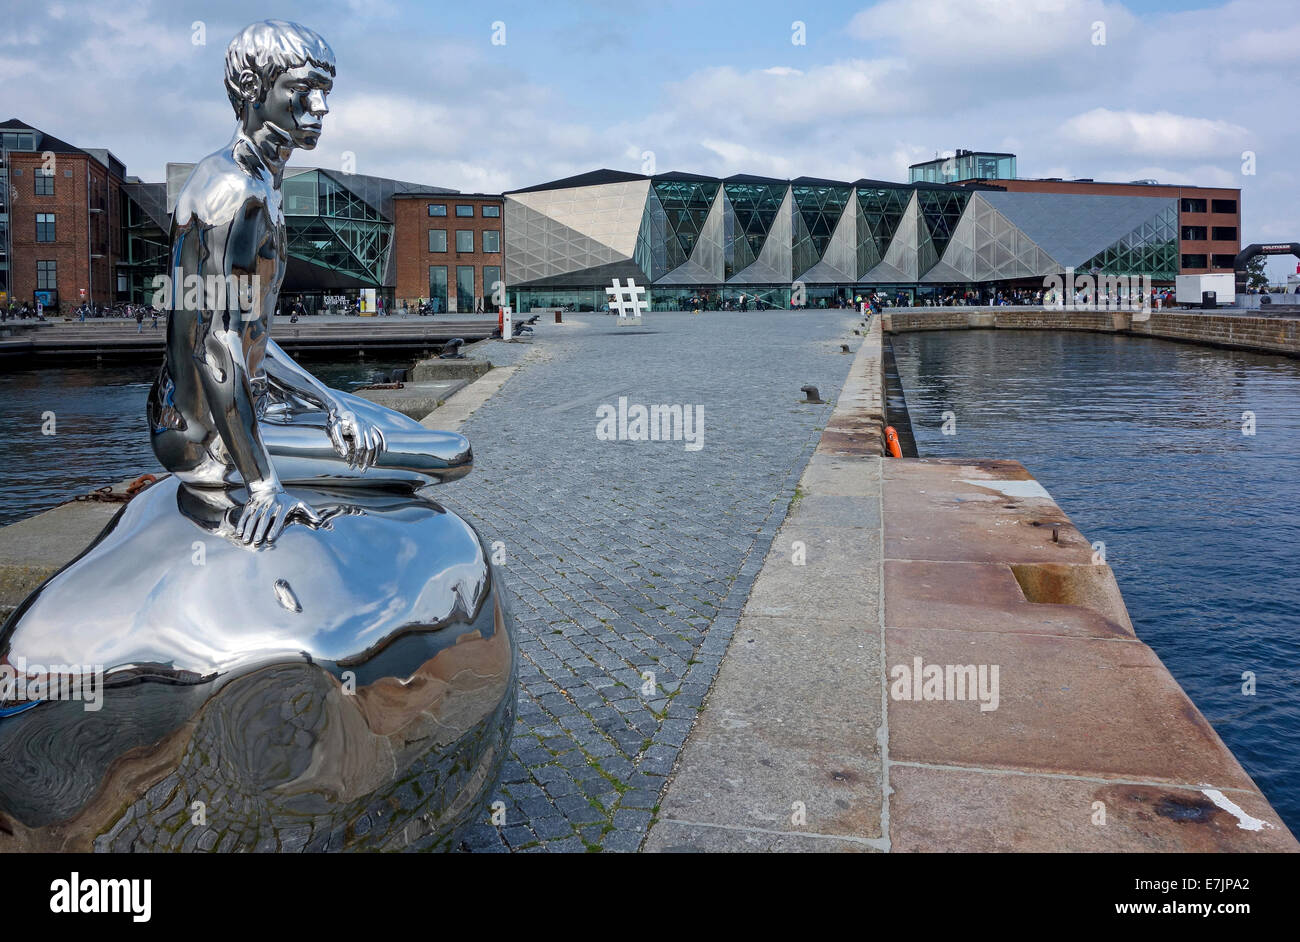 Kulturvaerftet og Bibliotek (The Culture Yard and Library) on the waterfront in Elsinore Denmark with sculpture - Stock Image